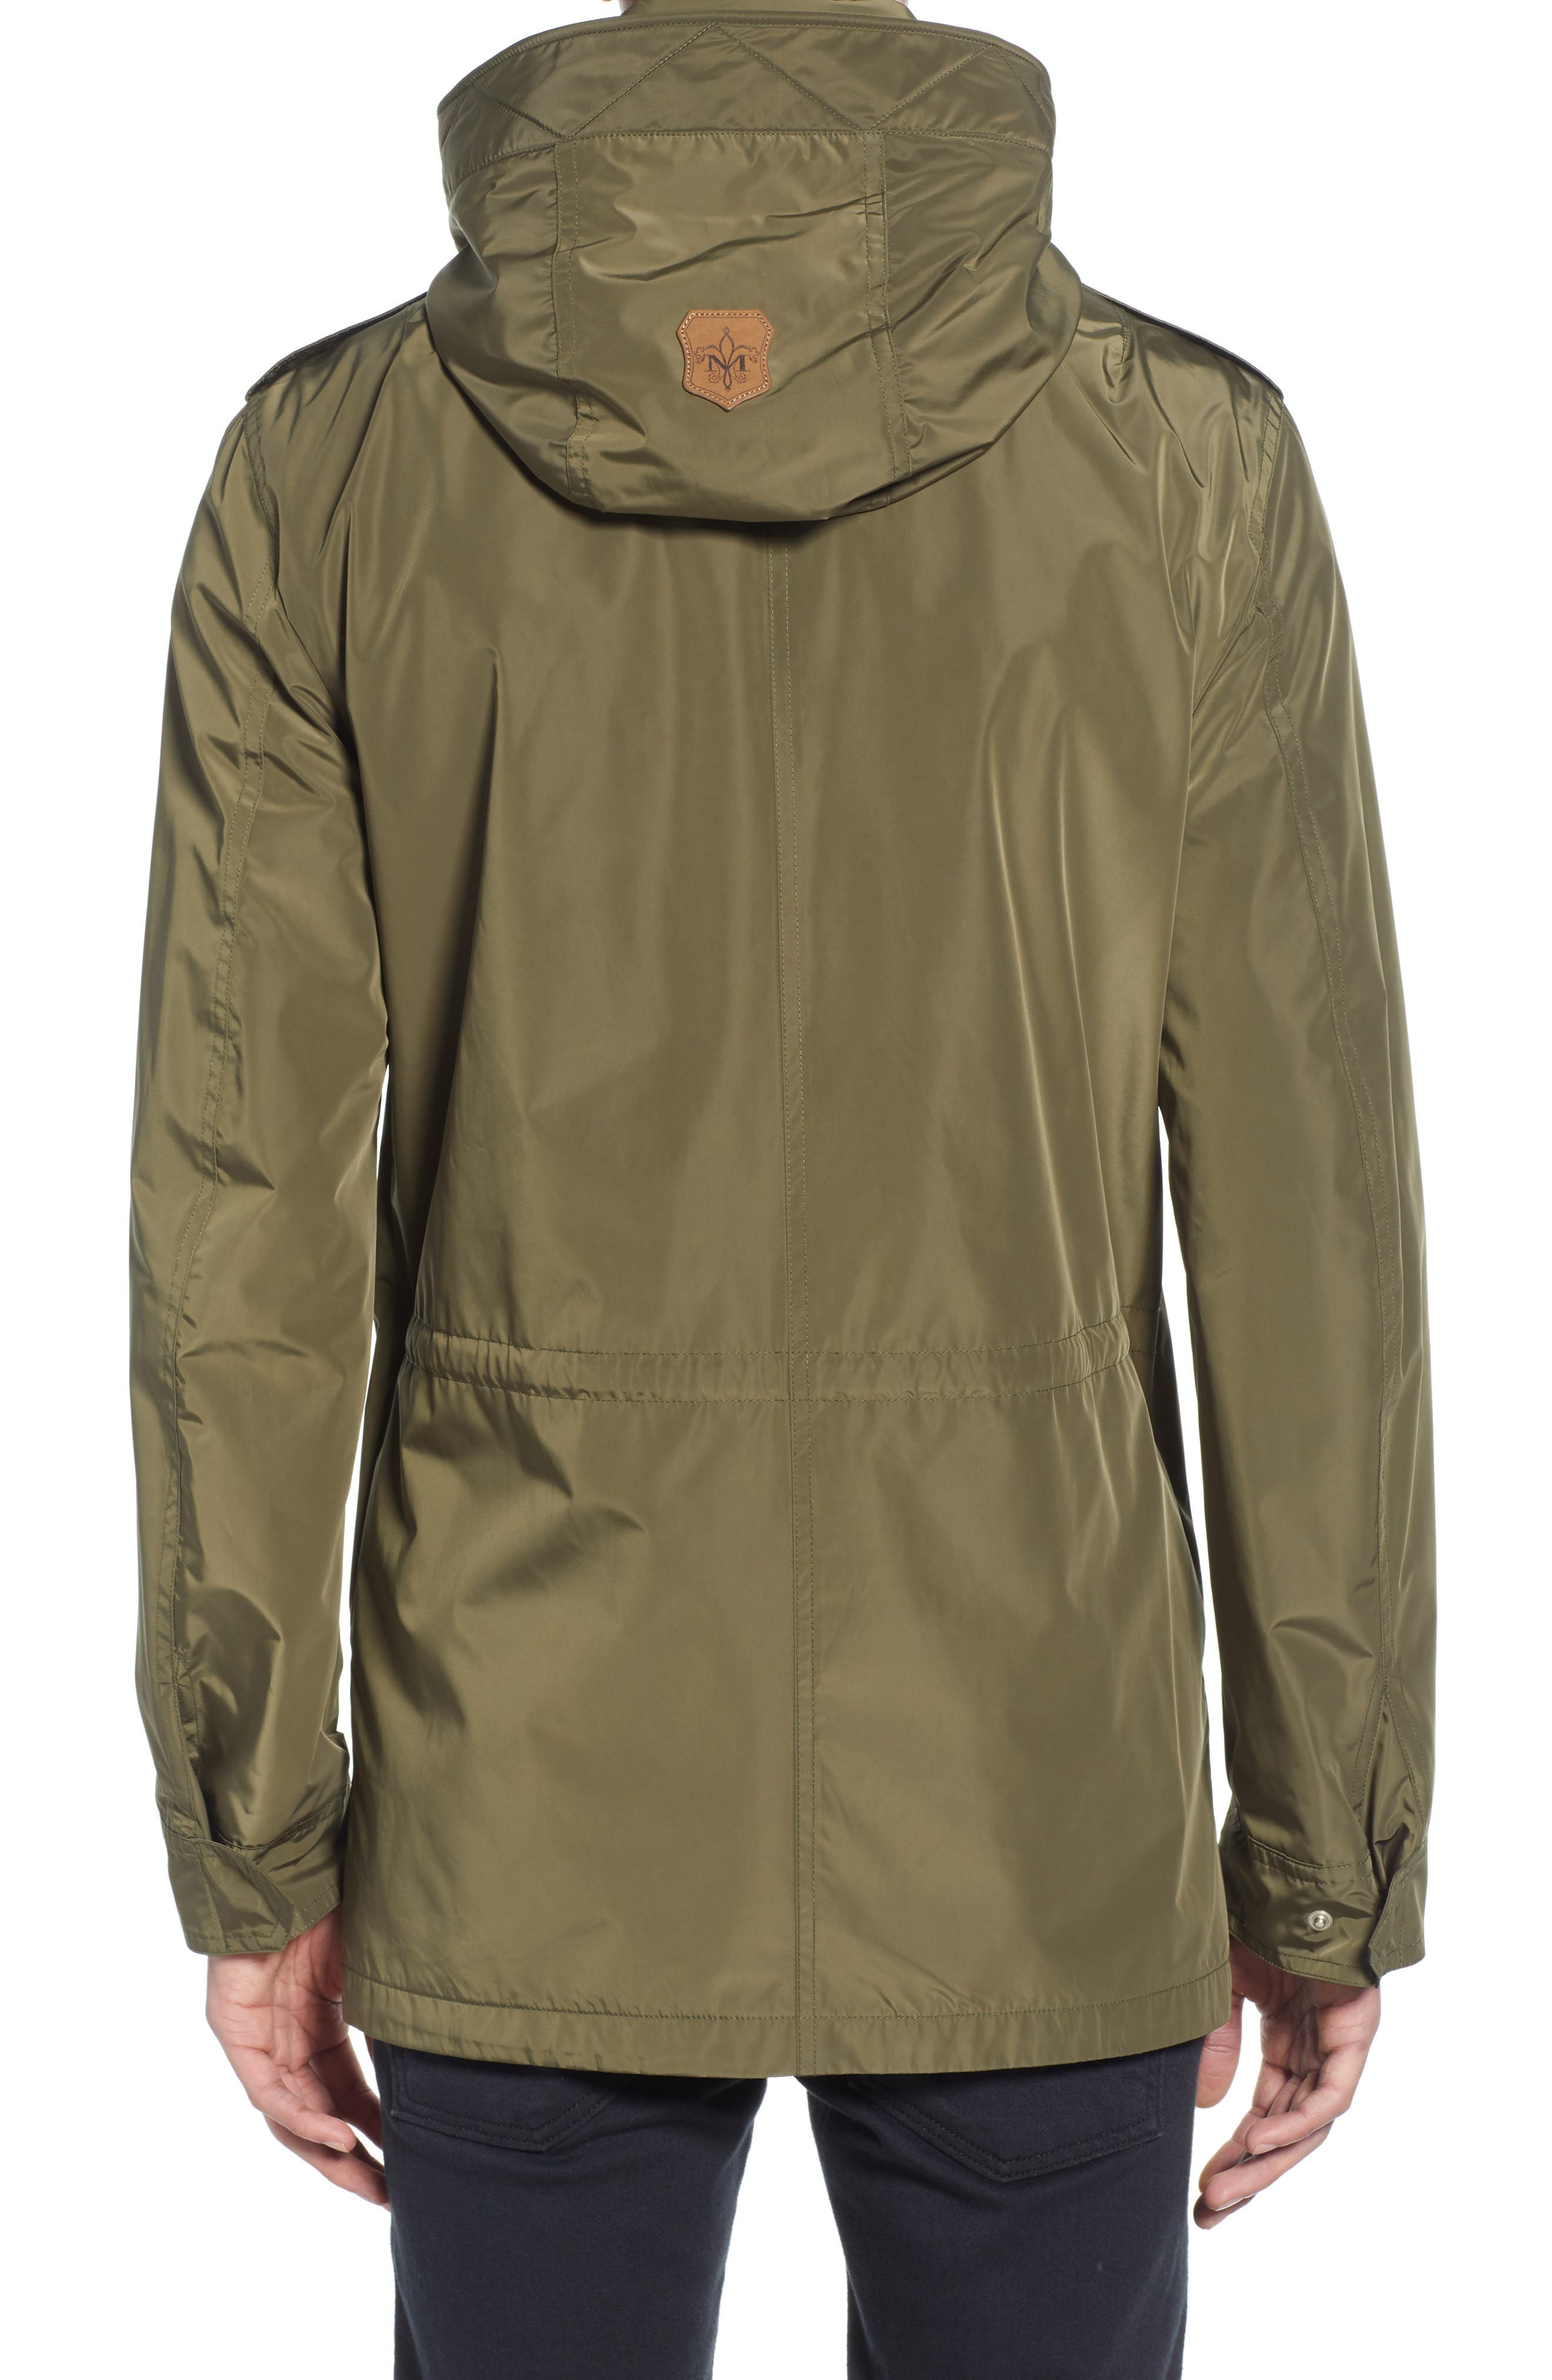 MACKAGE, Mack Water Repellent Lined Raincoat, Alternate thumbnail 2, color, ARMY